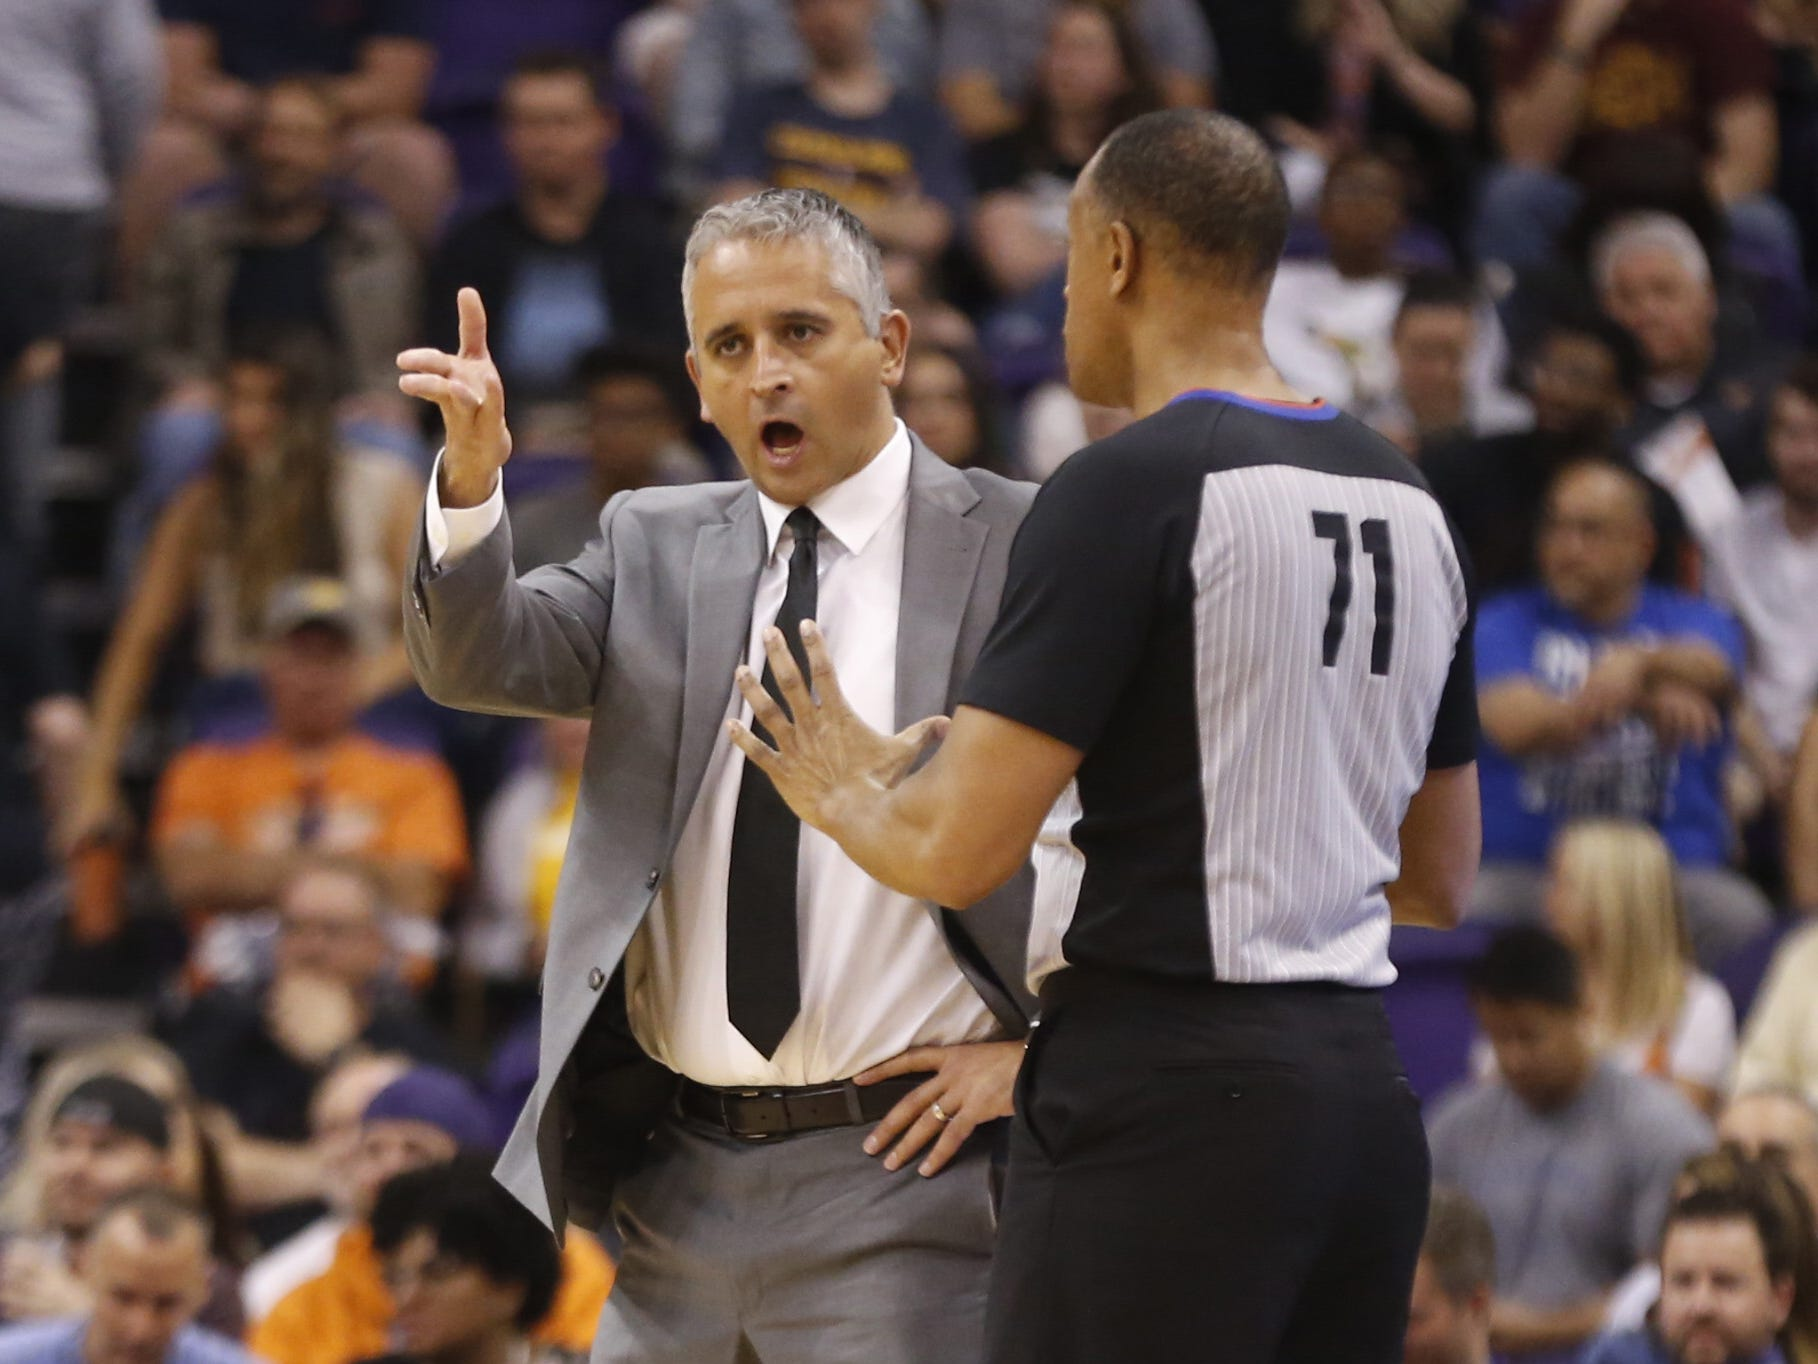 Suns' head coach Igor Kokoskov argues with an official during the first half at Talking Stick Resort Arena in Phoenix, Ariz. on April 1, 2019.